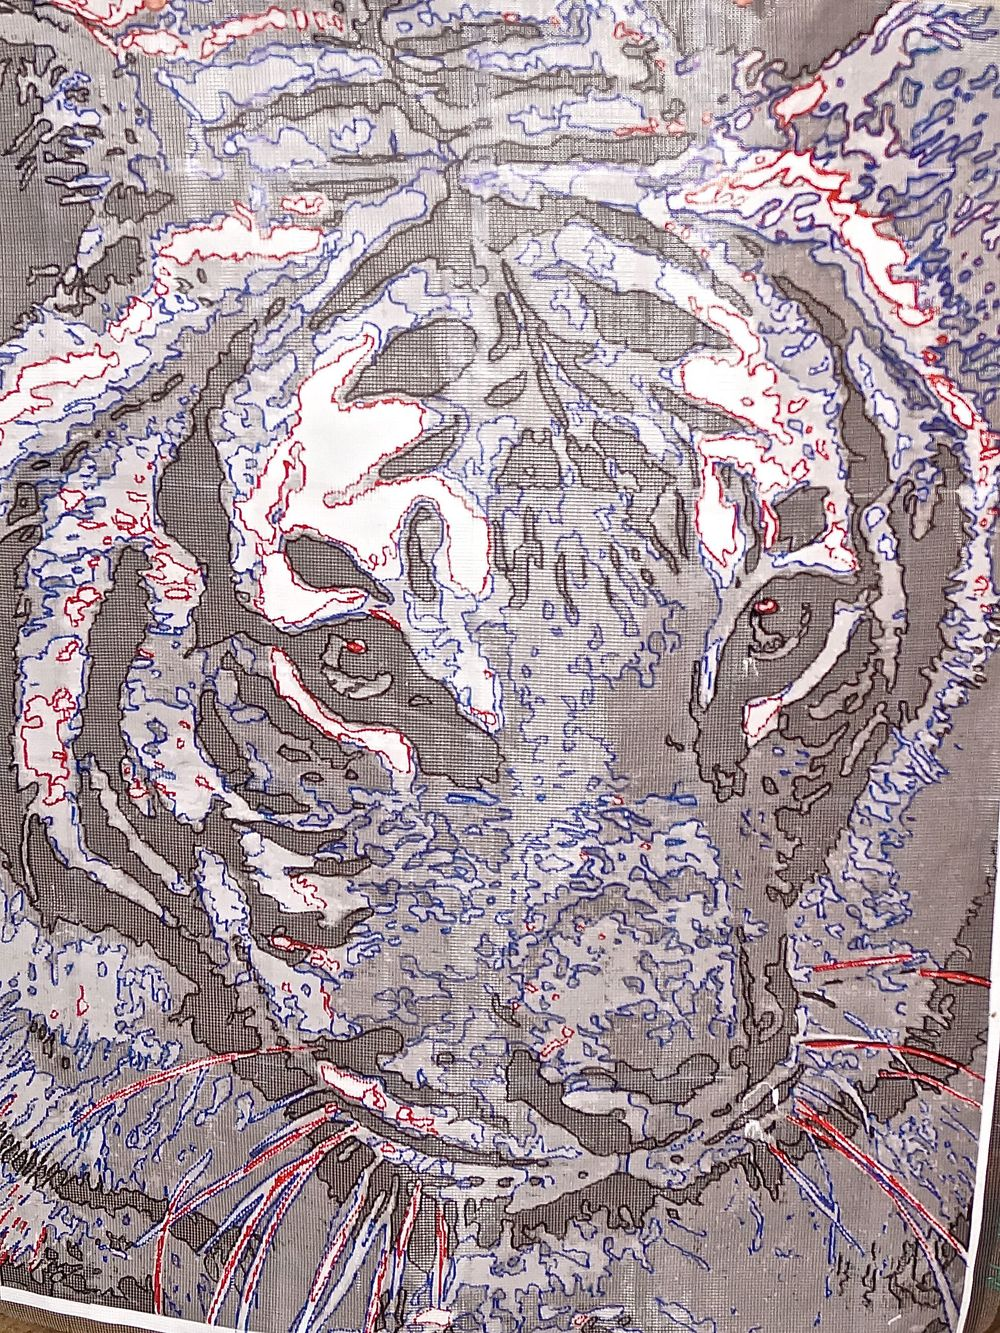 Satu the Tiger traced on grid fabric